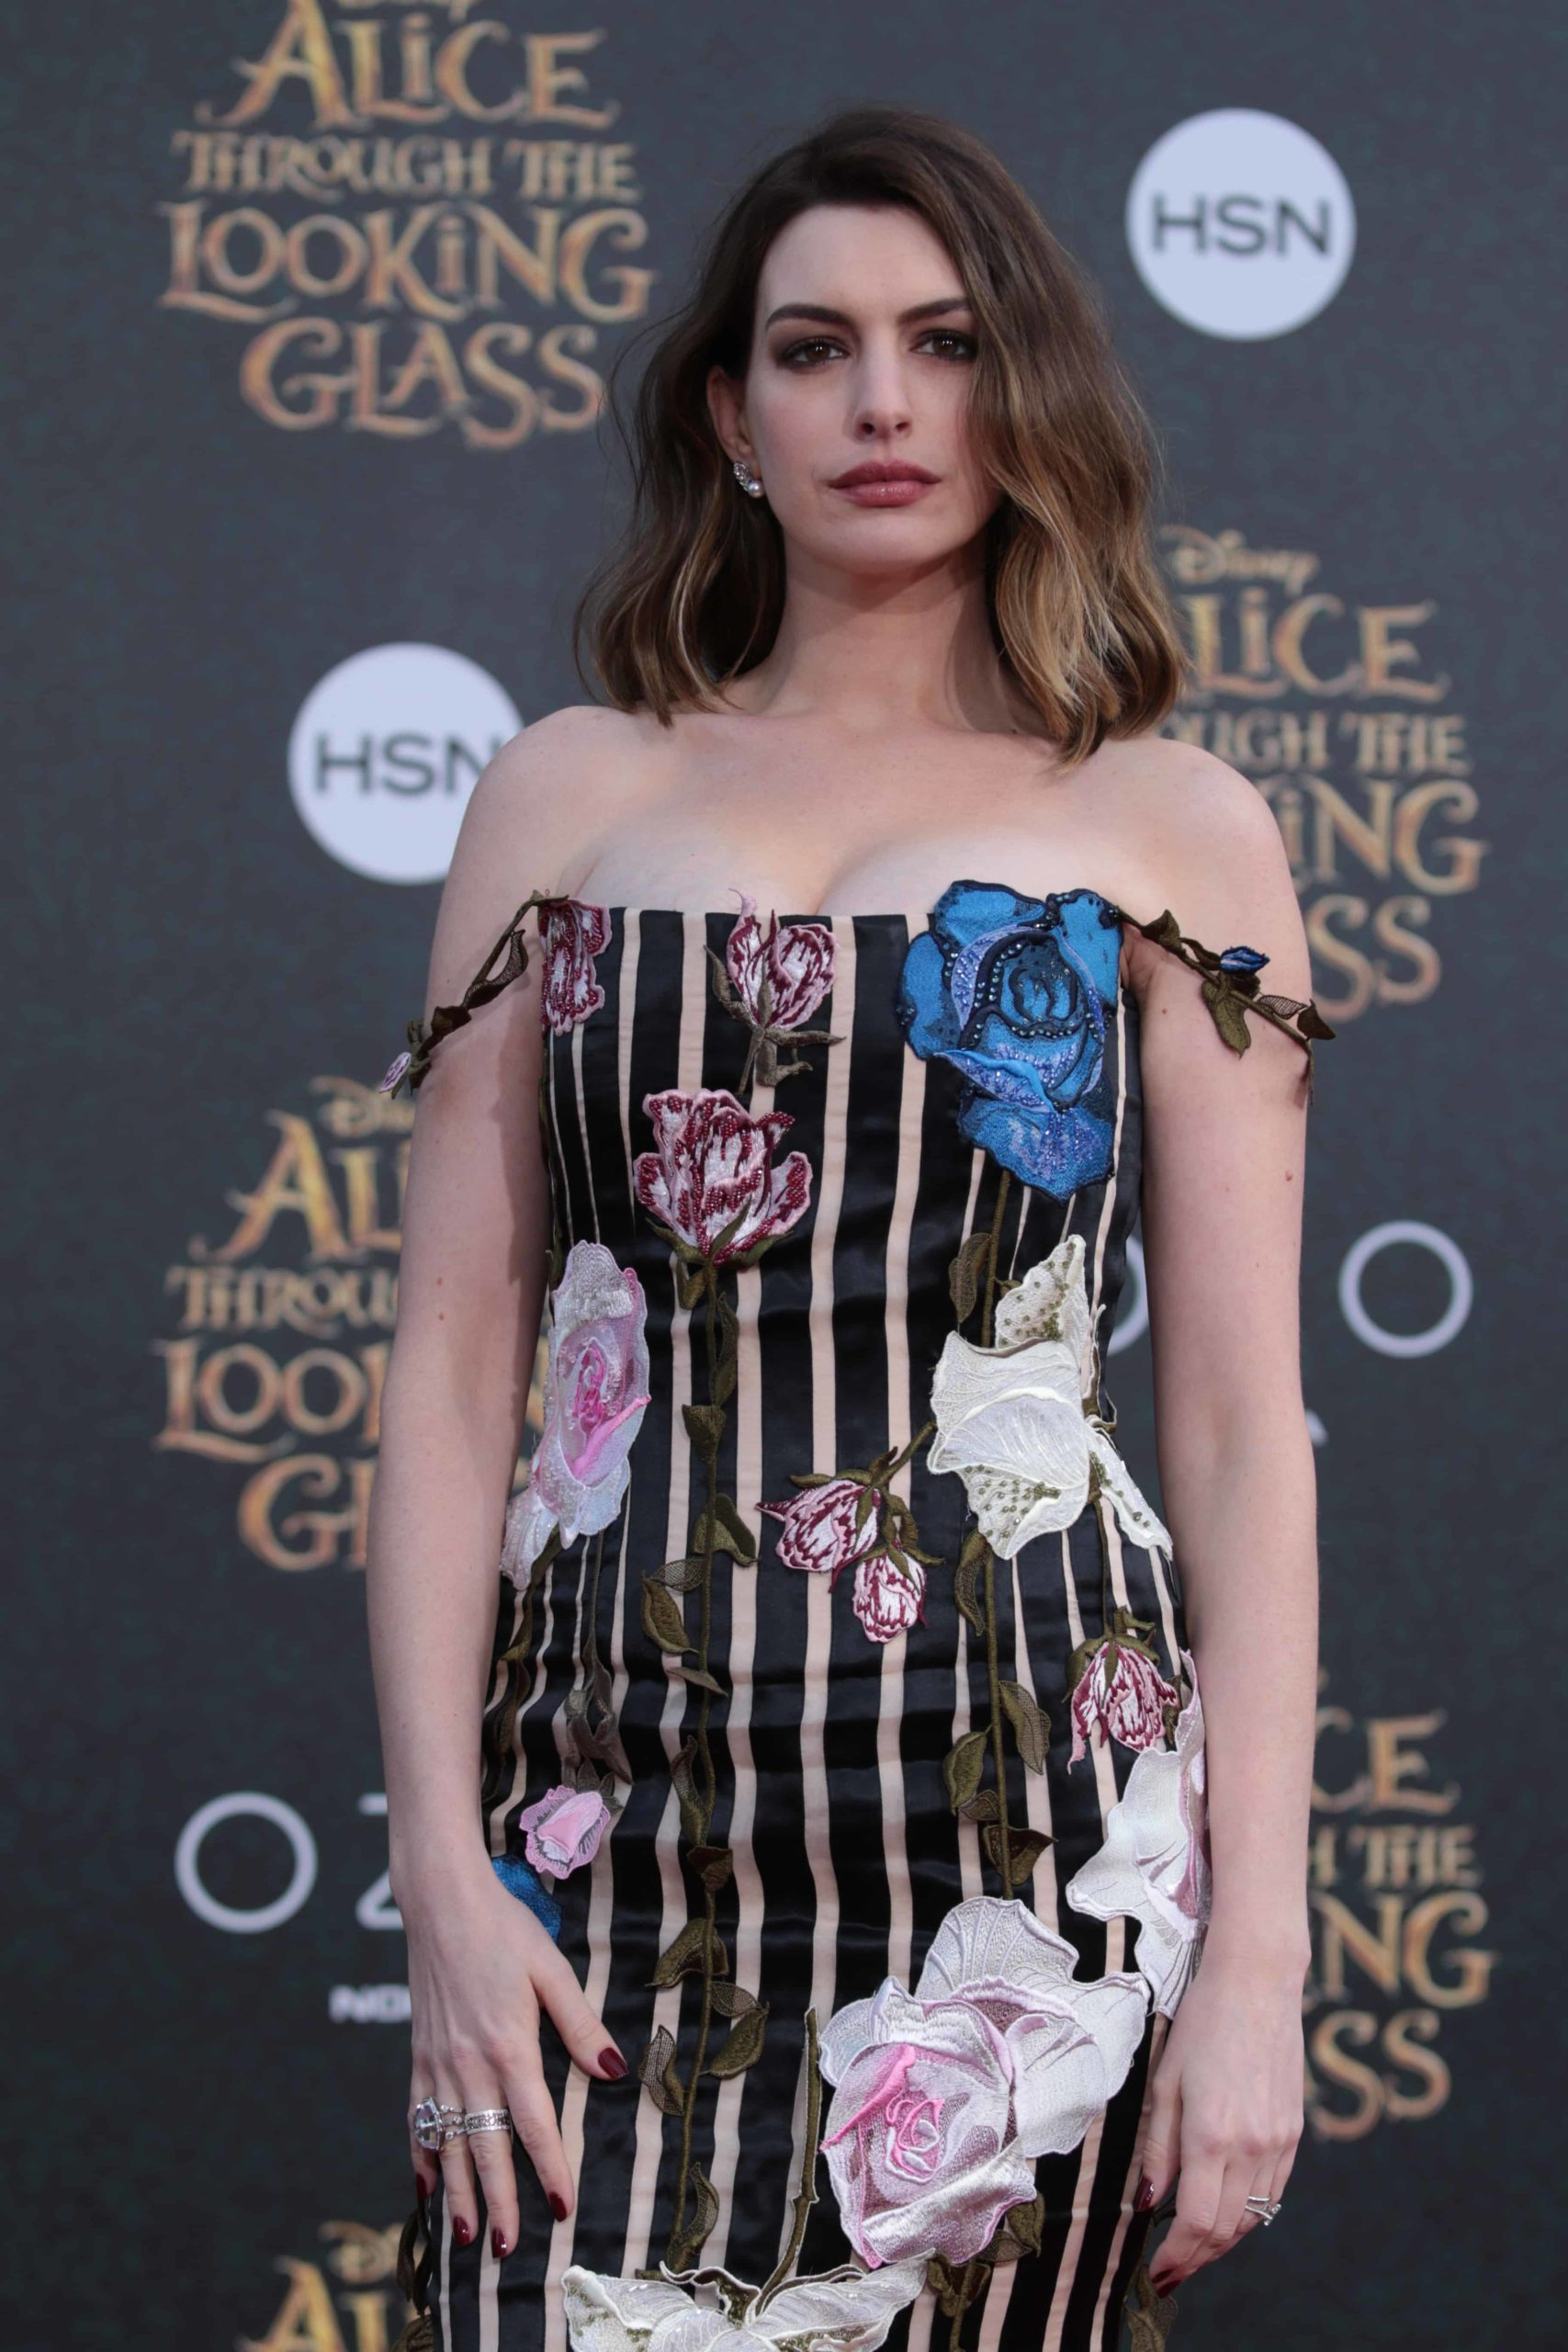 """Anne Hathaway arrives at The US Premiere of Disney's """"Alice Through the Looking Glass"""" at the El Capitan Theater in Los Angeles, CA on Monday, May 23, 2016. (Photo: Alex J. Berliner/ABImages)"""